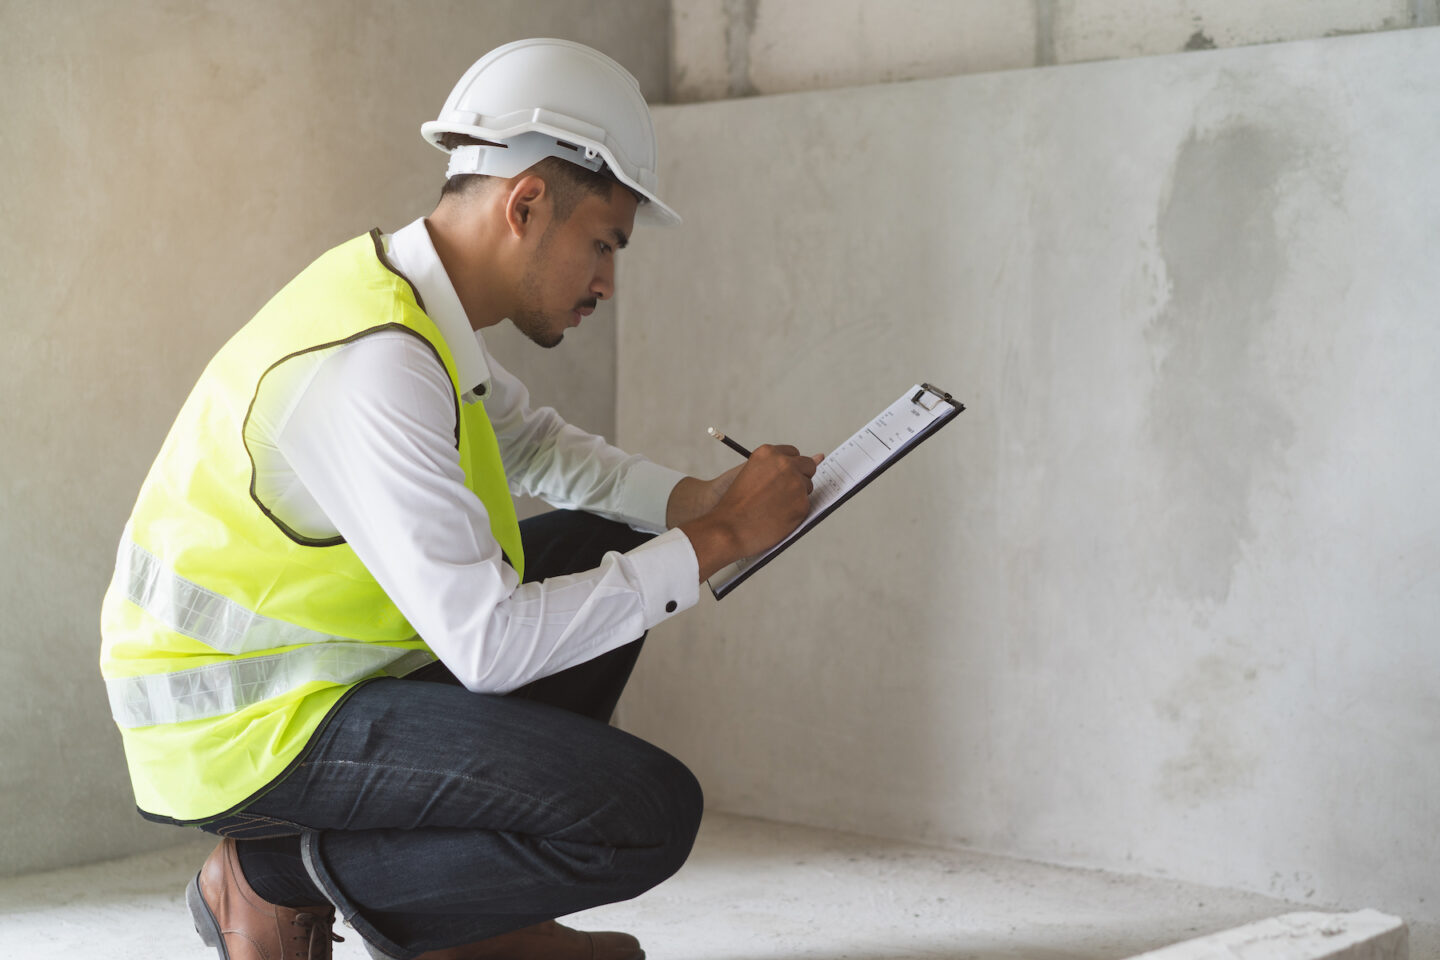 Detailed Reporting by Surveyor